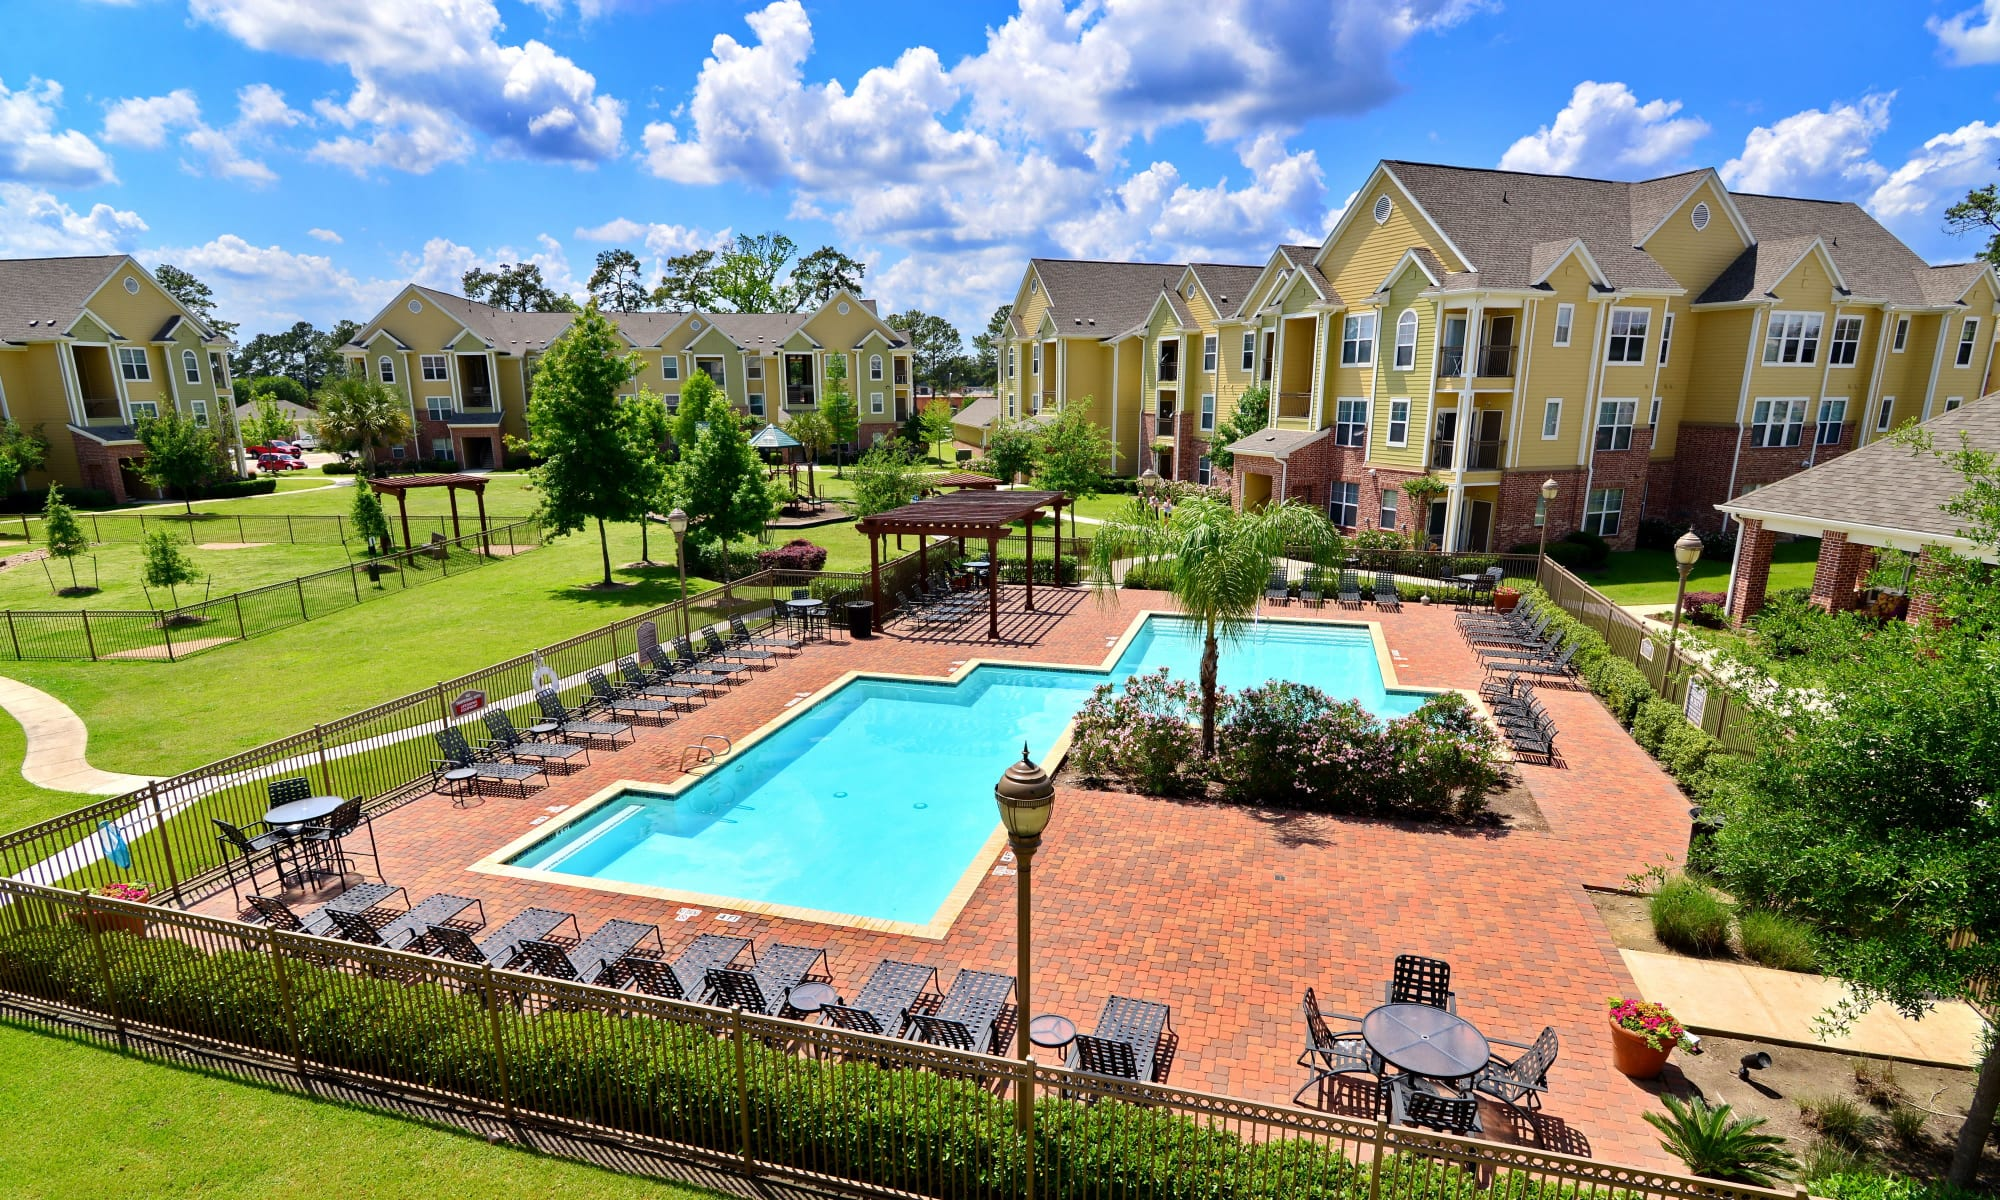 Learn more about our apartment community at IMT Kingwood in Kingwood